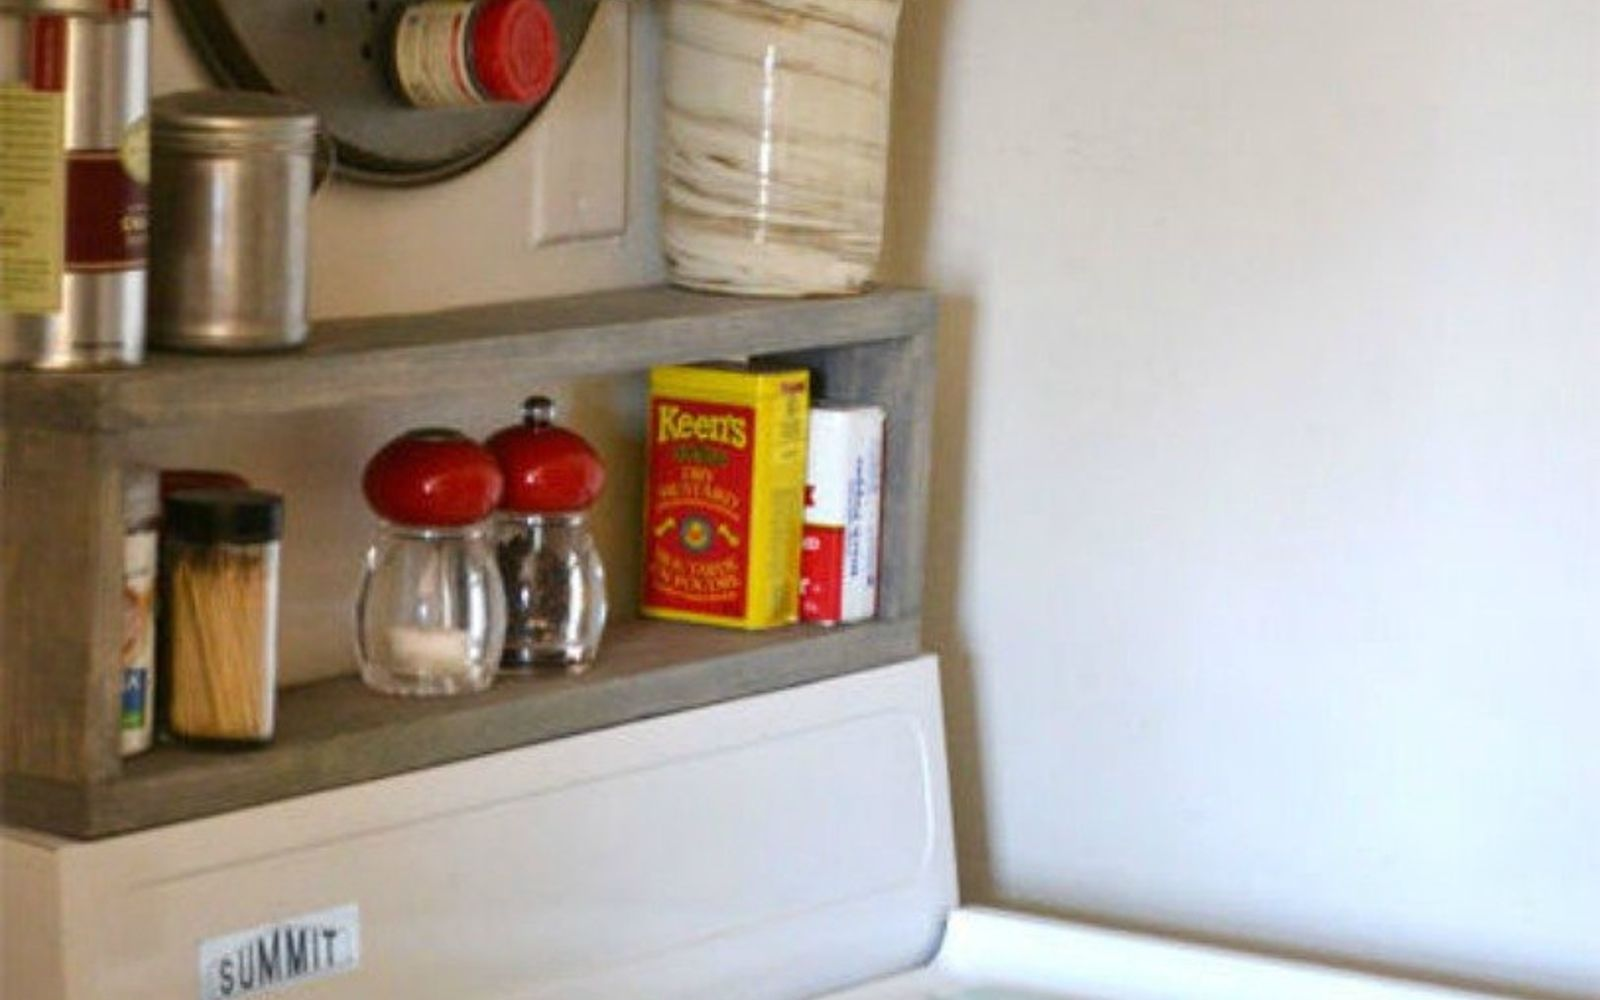 Design For Kitchen Shelves: 12 Space Saving Hacks For Your Tight Kitchen